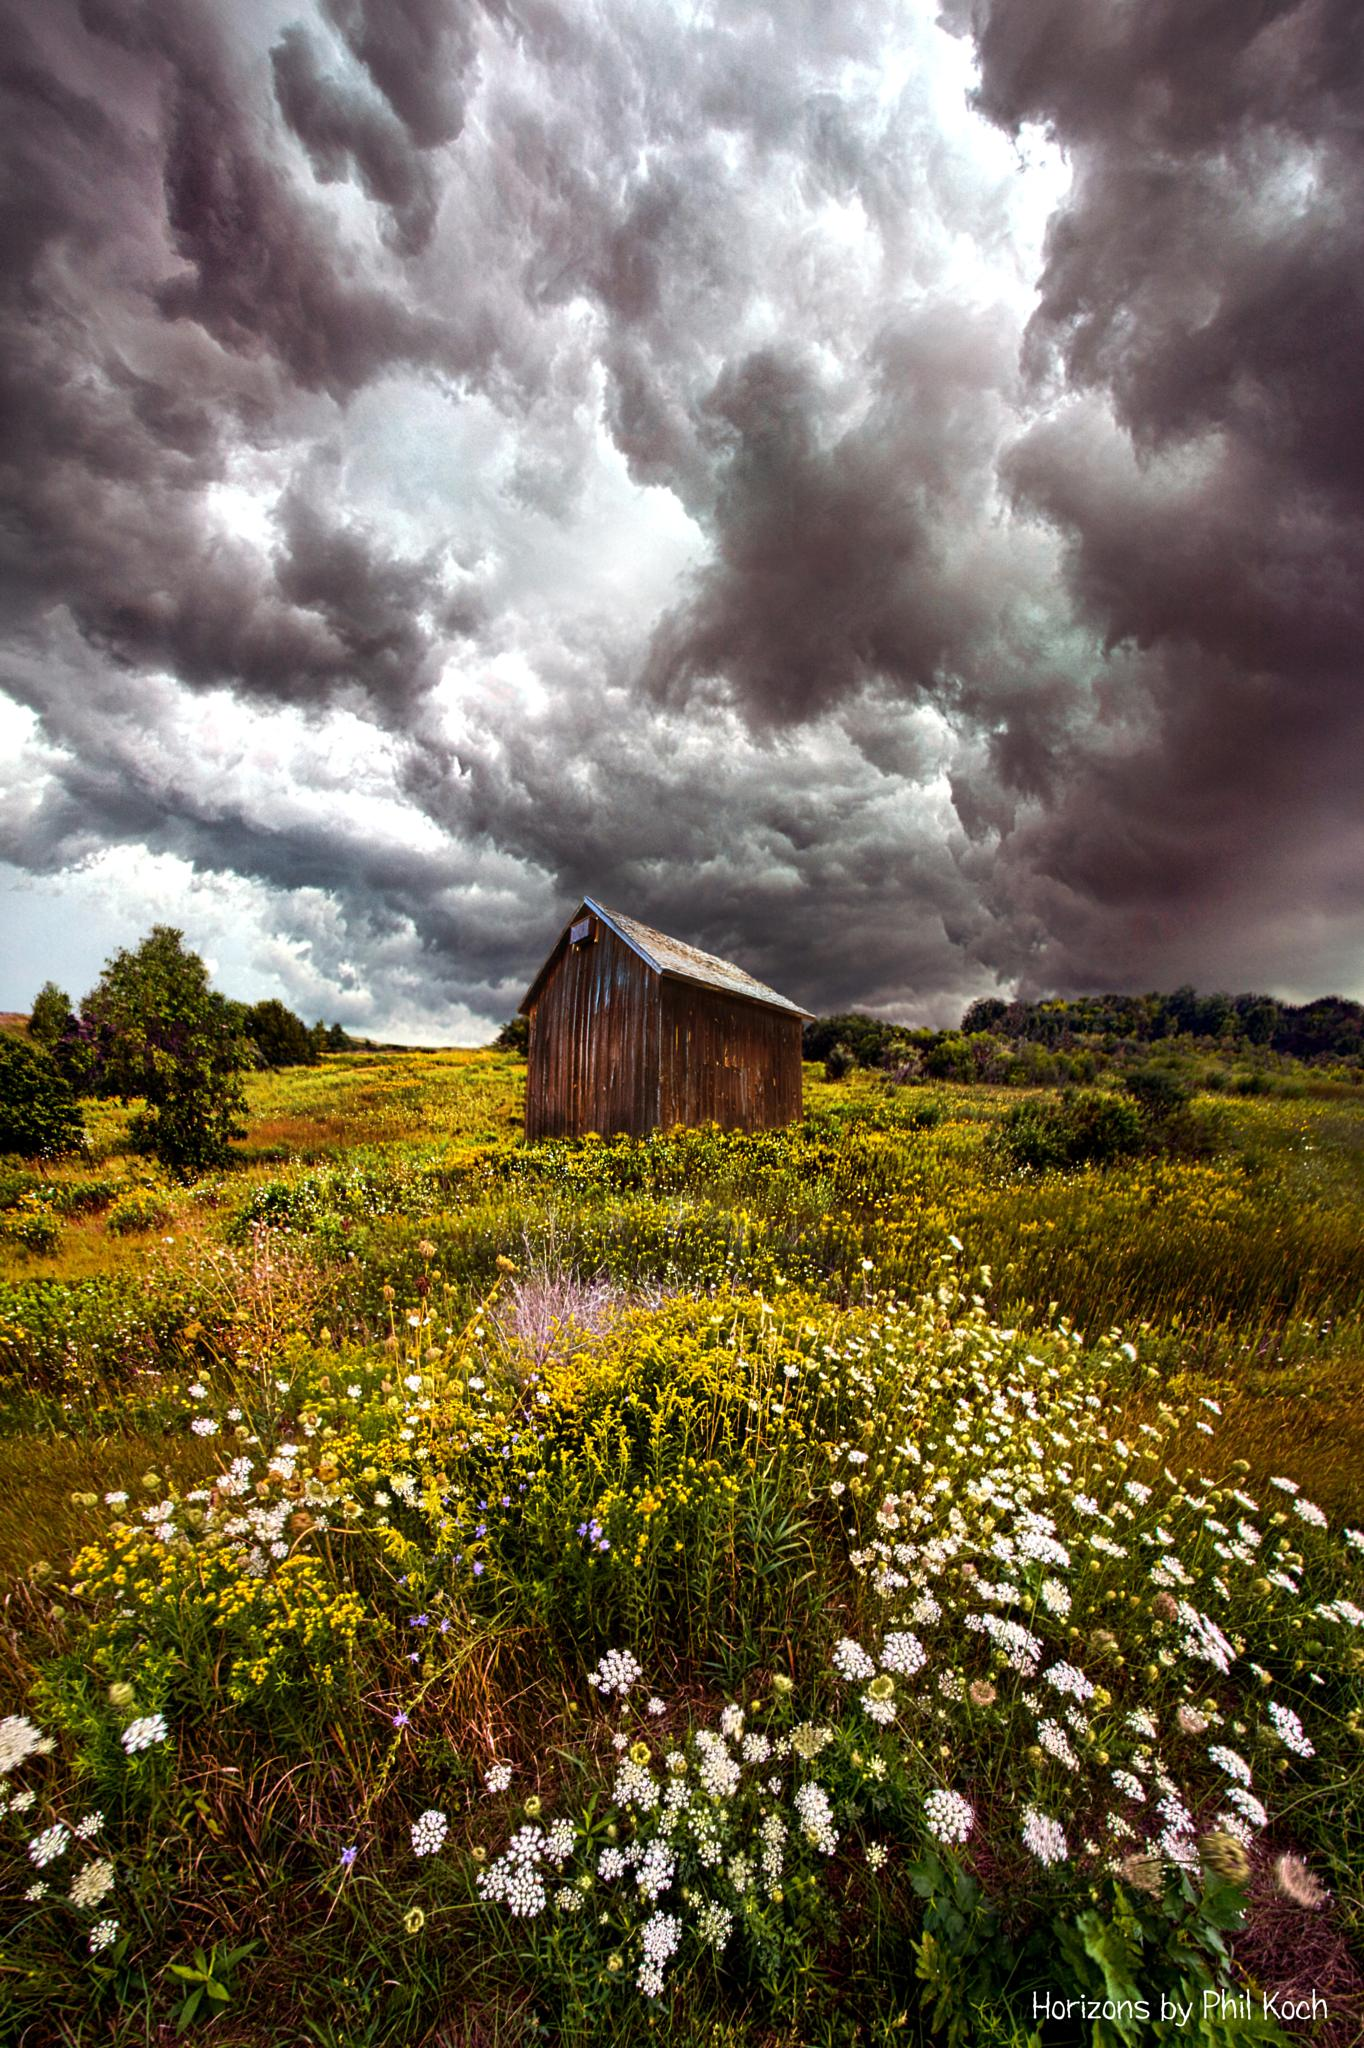 Storms of Bygone Summer Days by PhilKoch